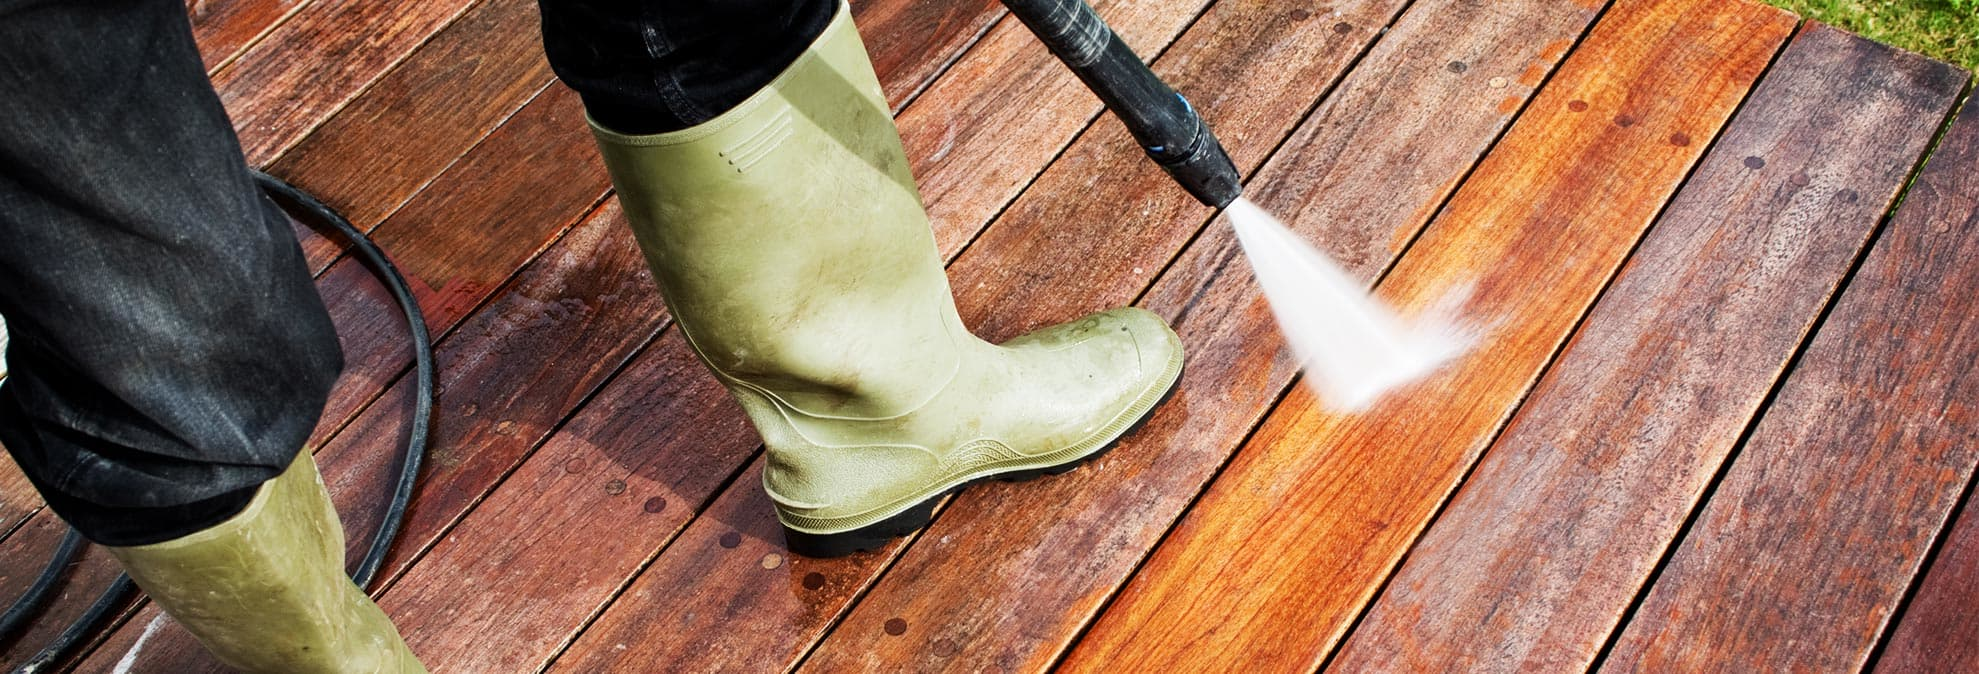 Best Pressure Washers of 2018